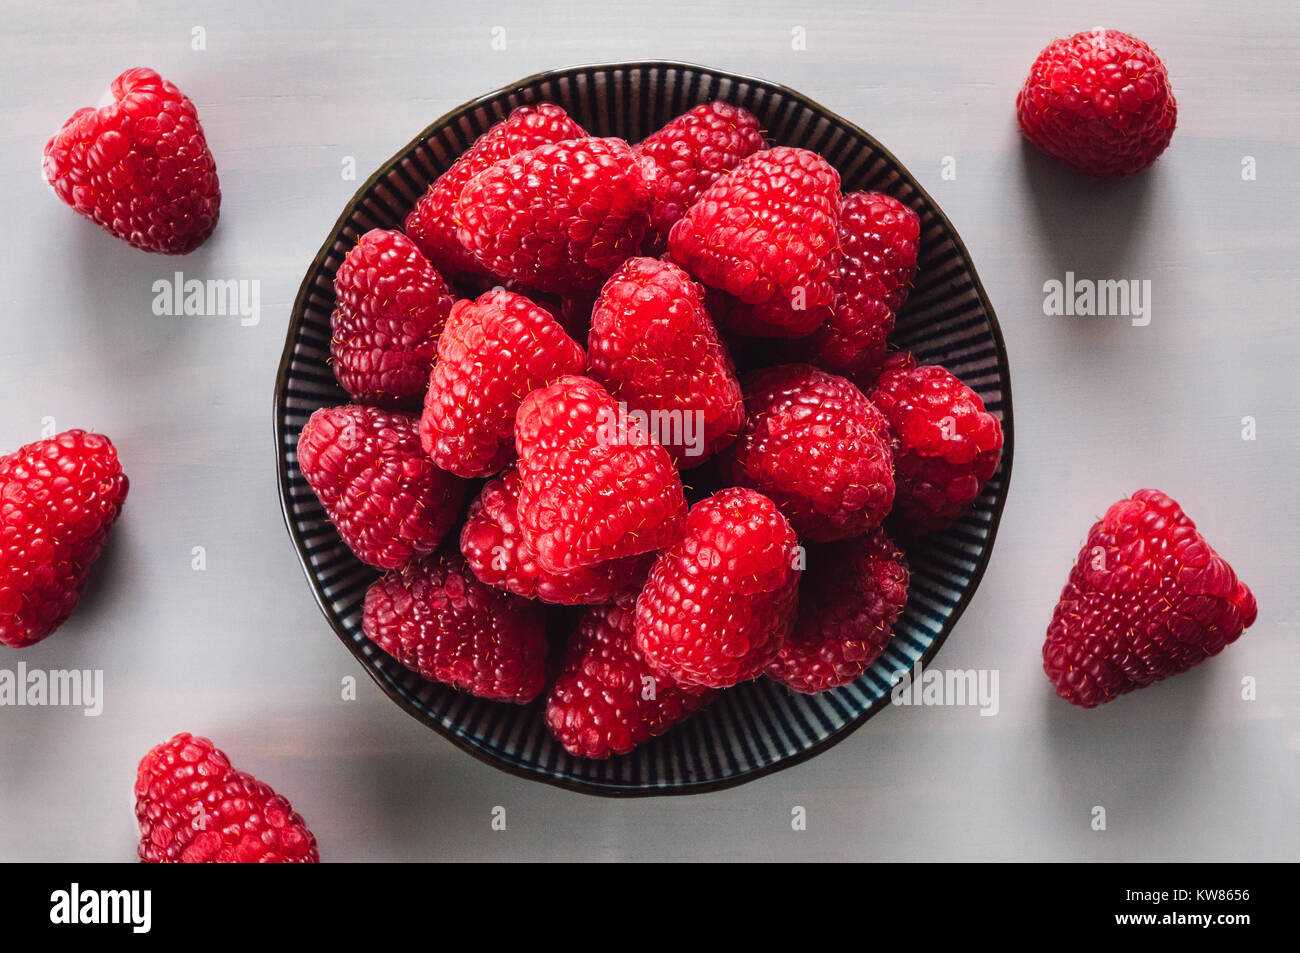 Bowl of Fresh Raspberries on Grey Table - Stock Image